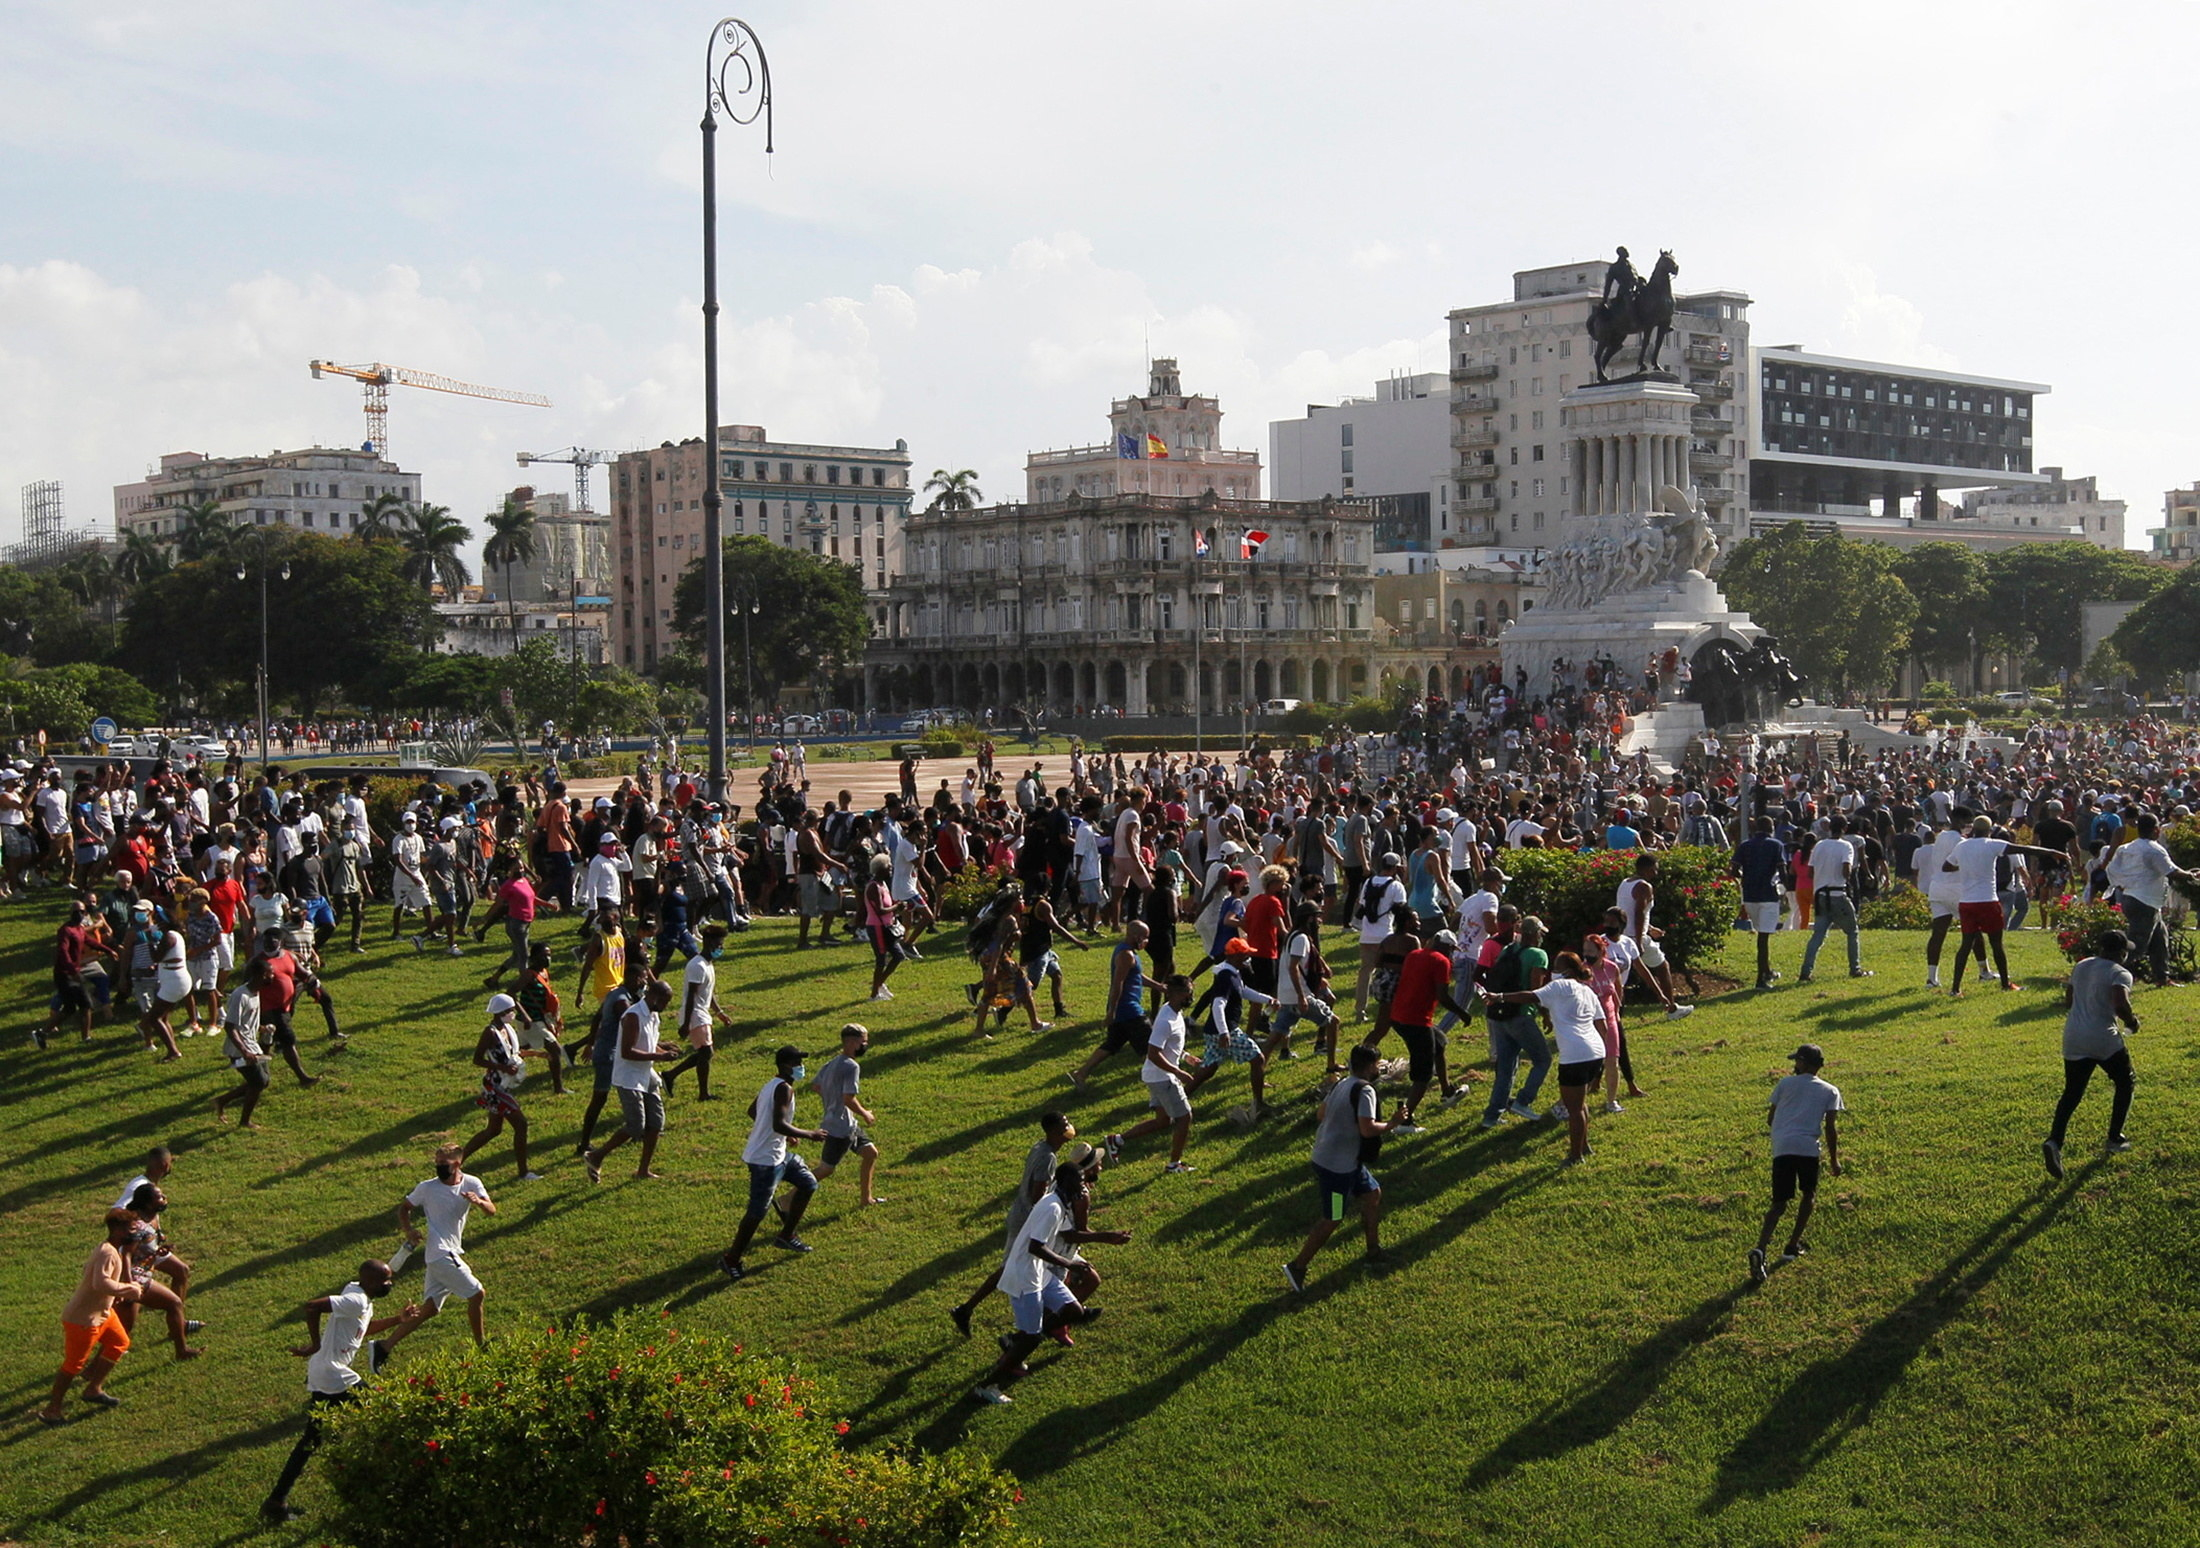 A crowd of people is seen running across the lawn of a government building